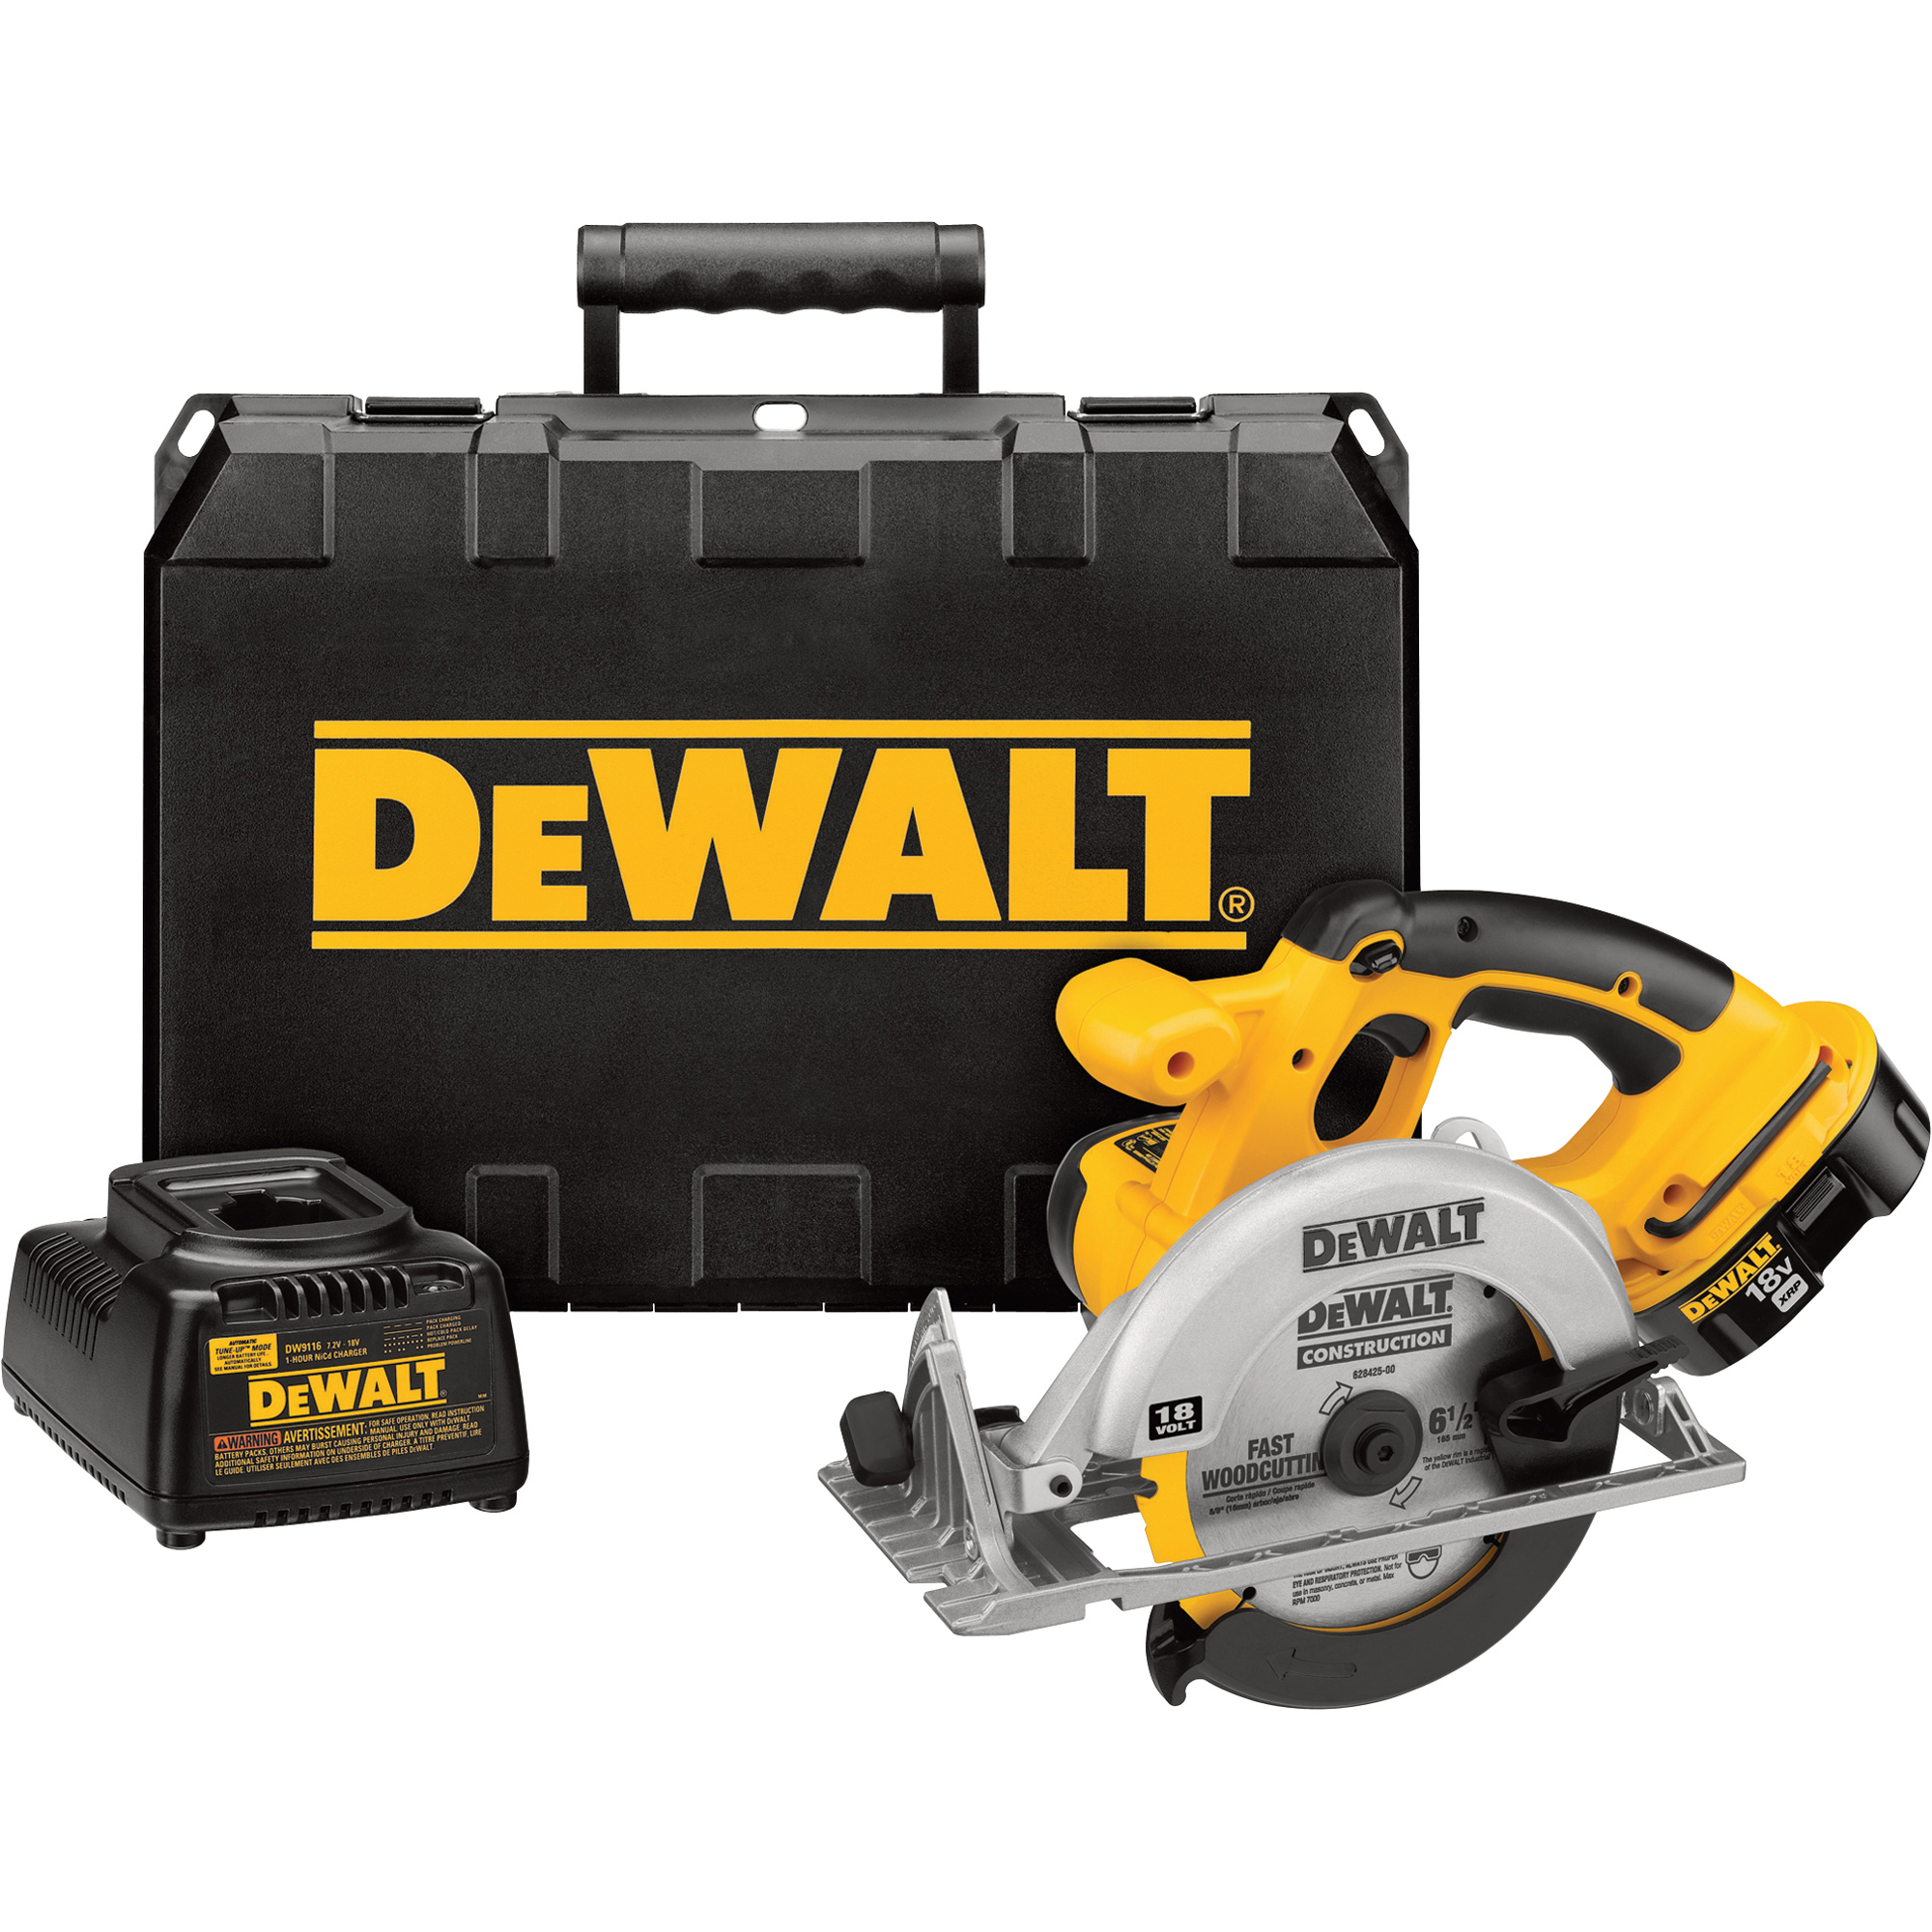 free shipping dewalt cordless 6 1 2in circular saw kit. Black Bedroom Furniture Sets. Home Design Ideas